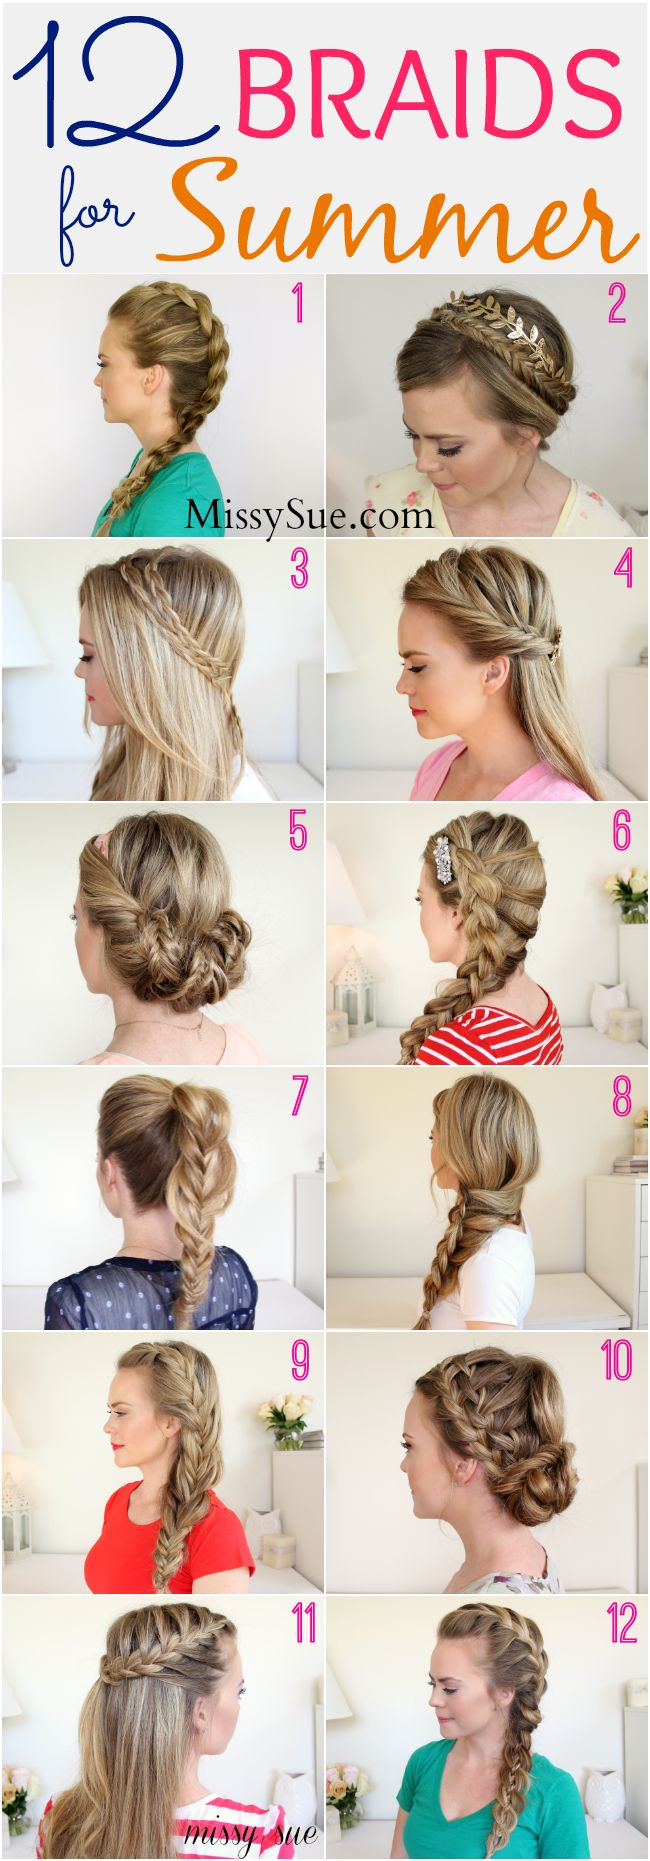 best hair images on Pinterest Cute hairstyles Bridal